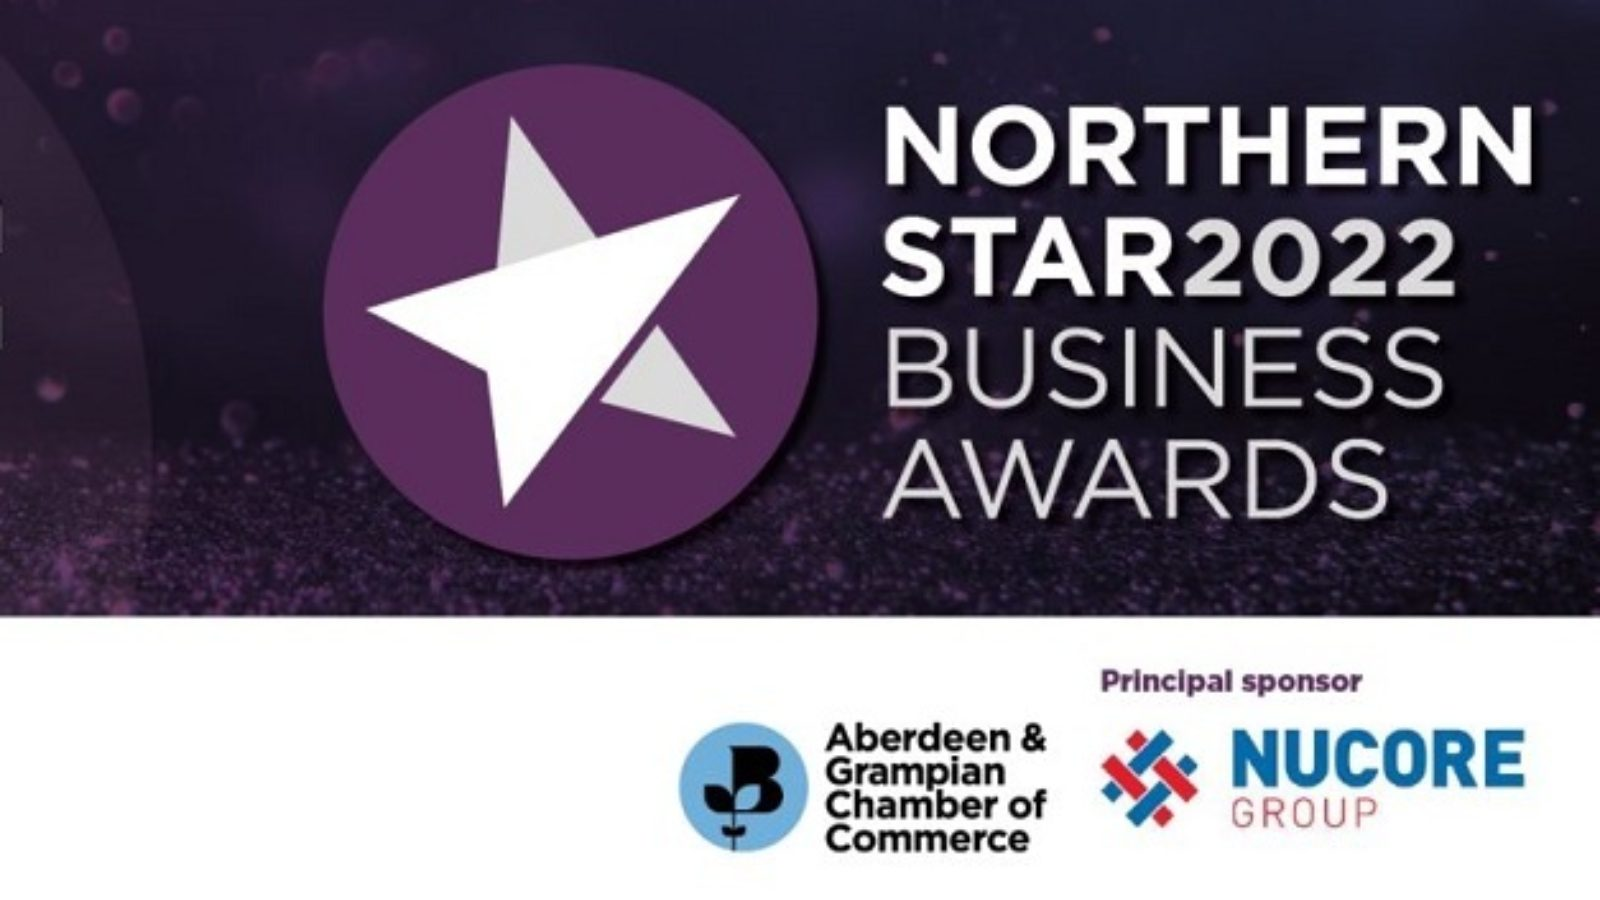 Northern Star Business Awards 2022 nominations are now open. Download your forms here!